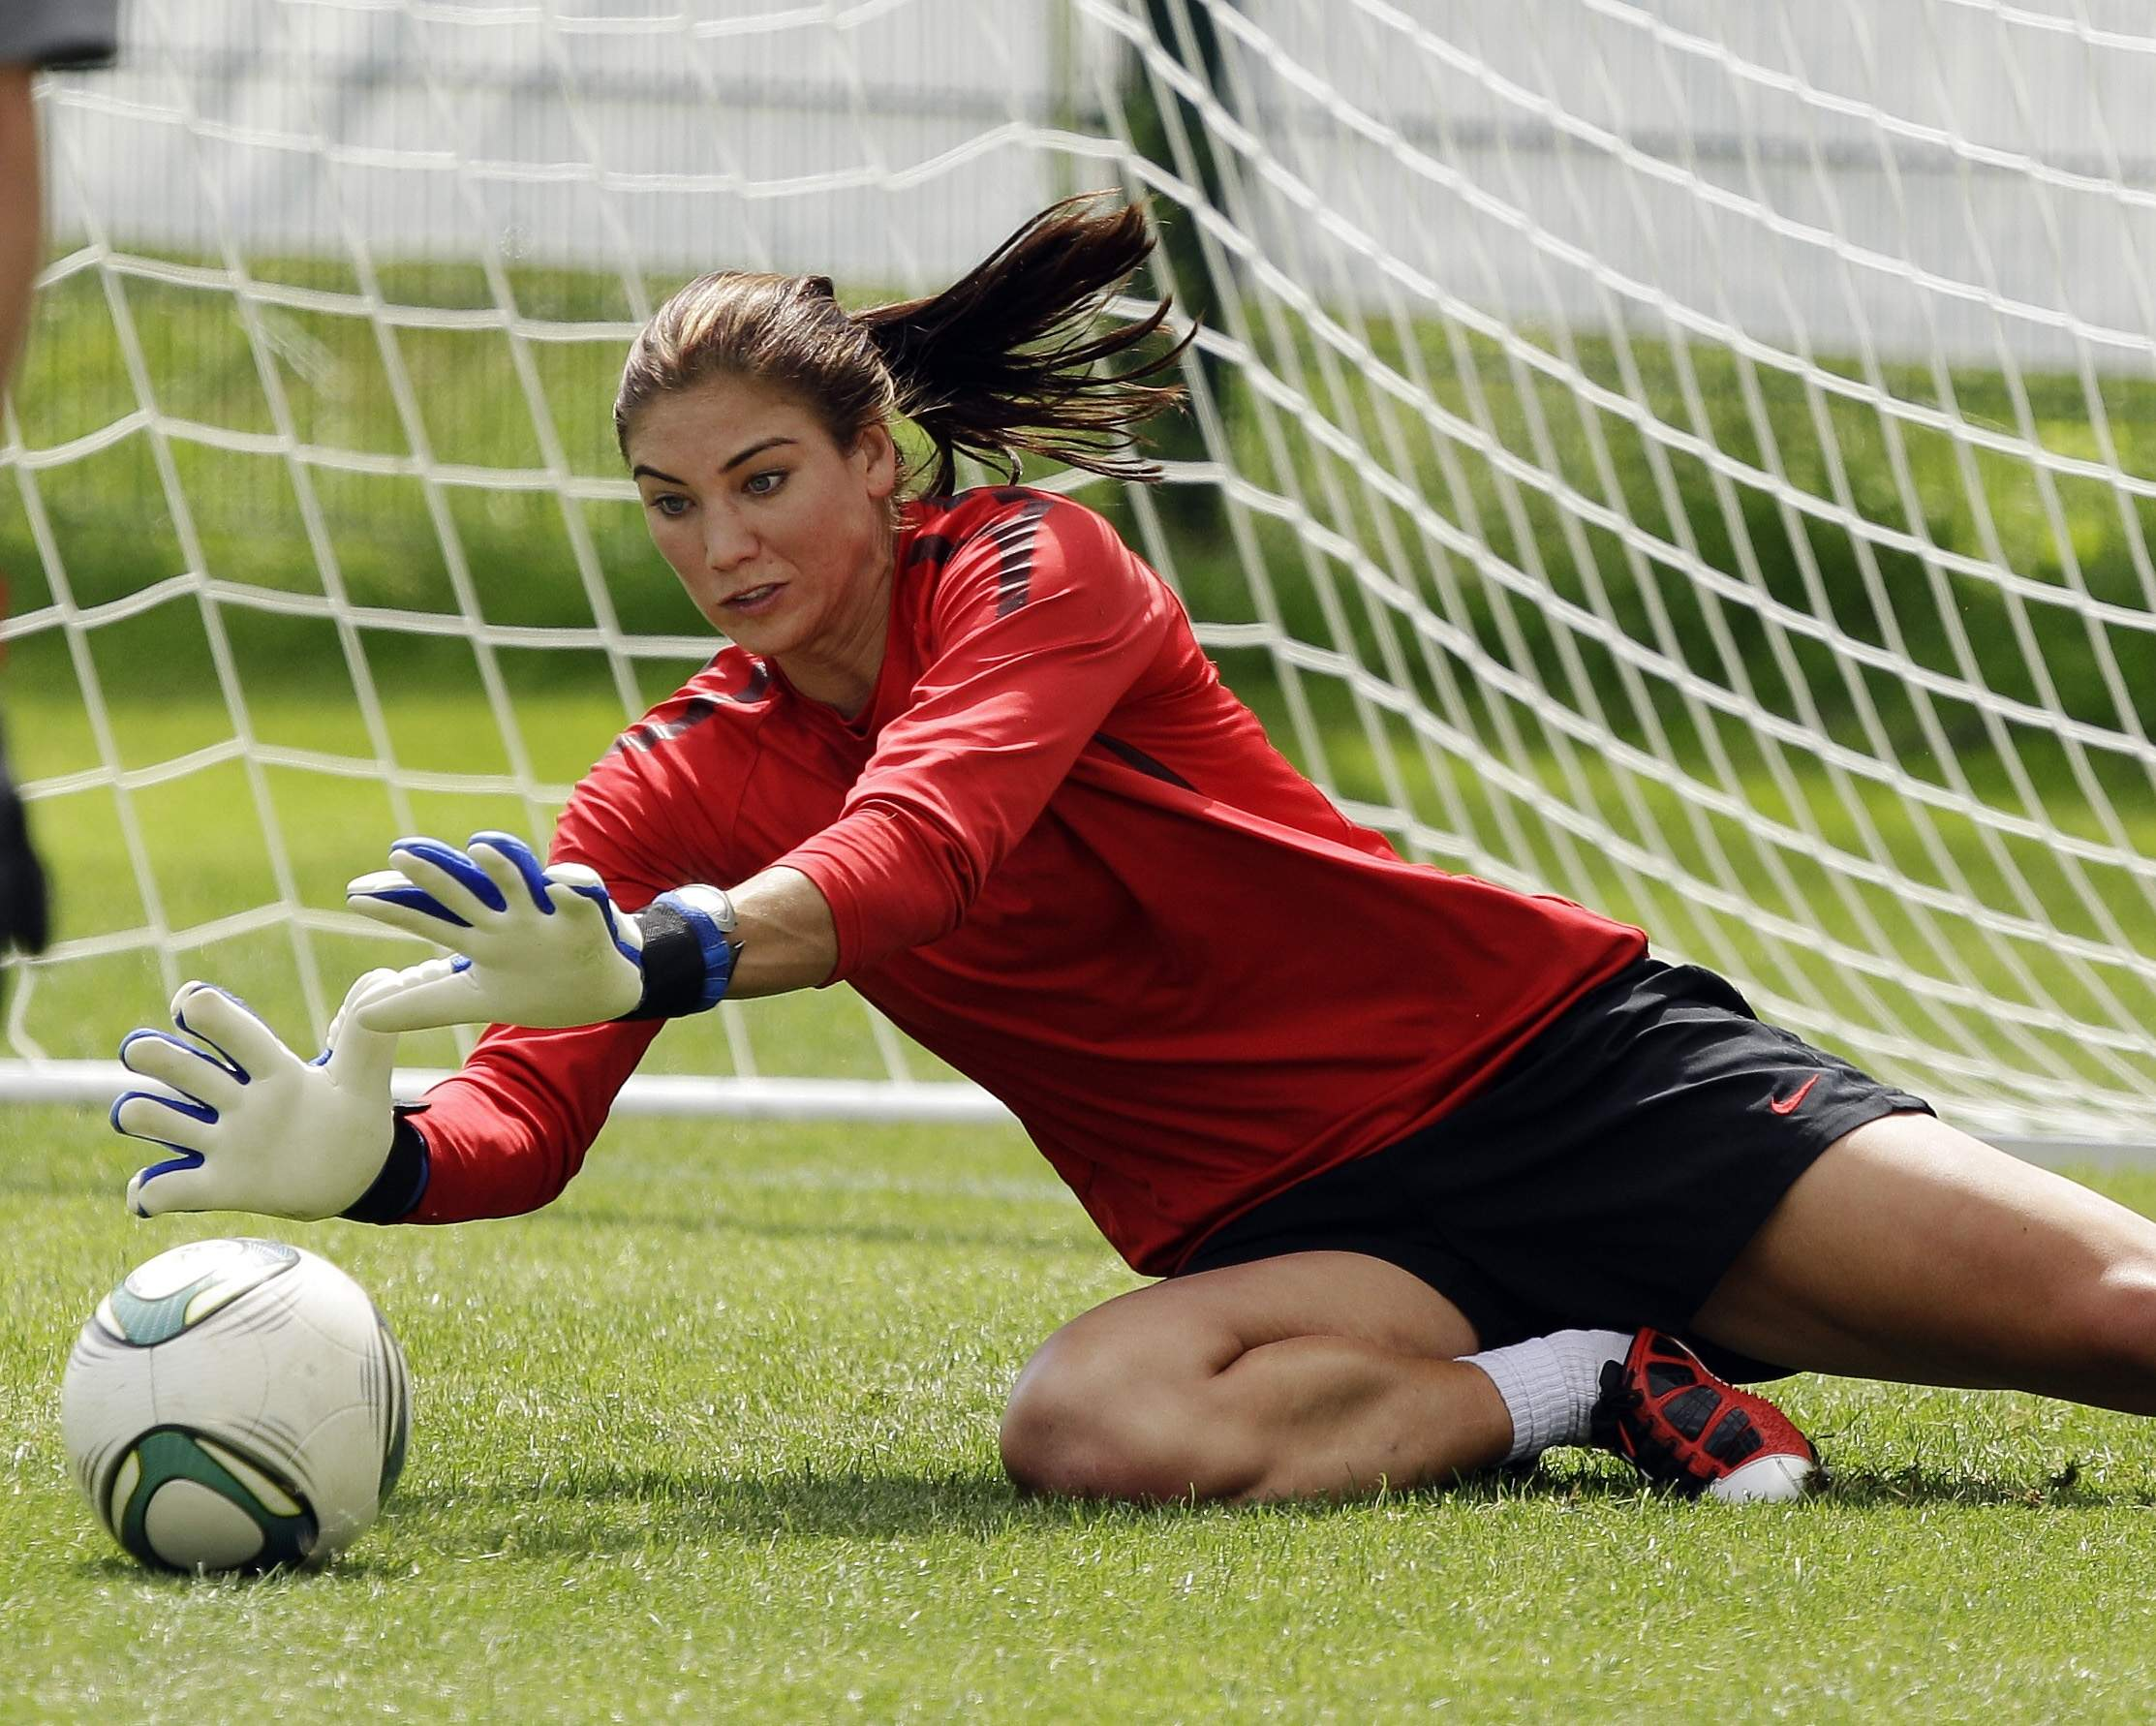 Valuable Tips For Goalkeeper